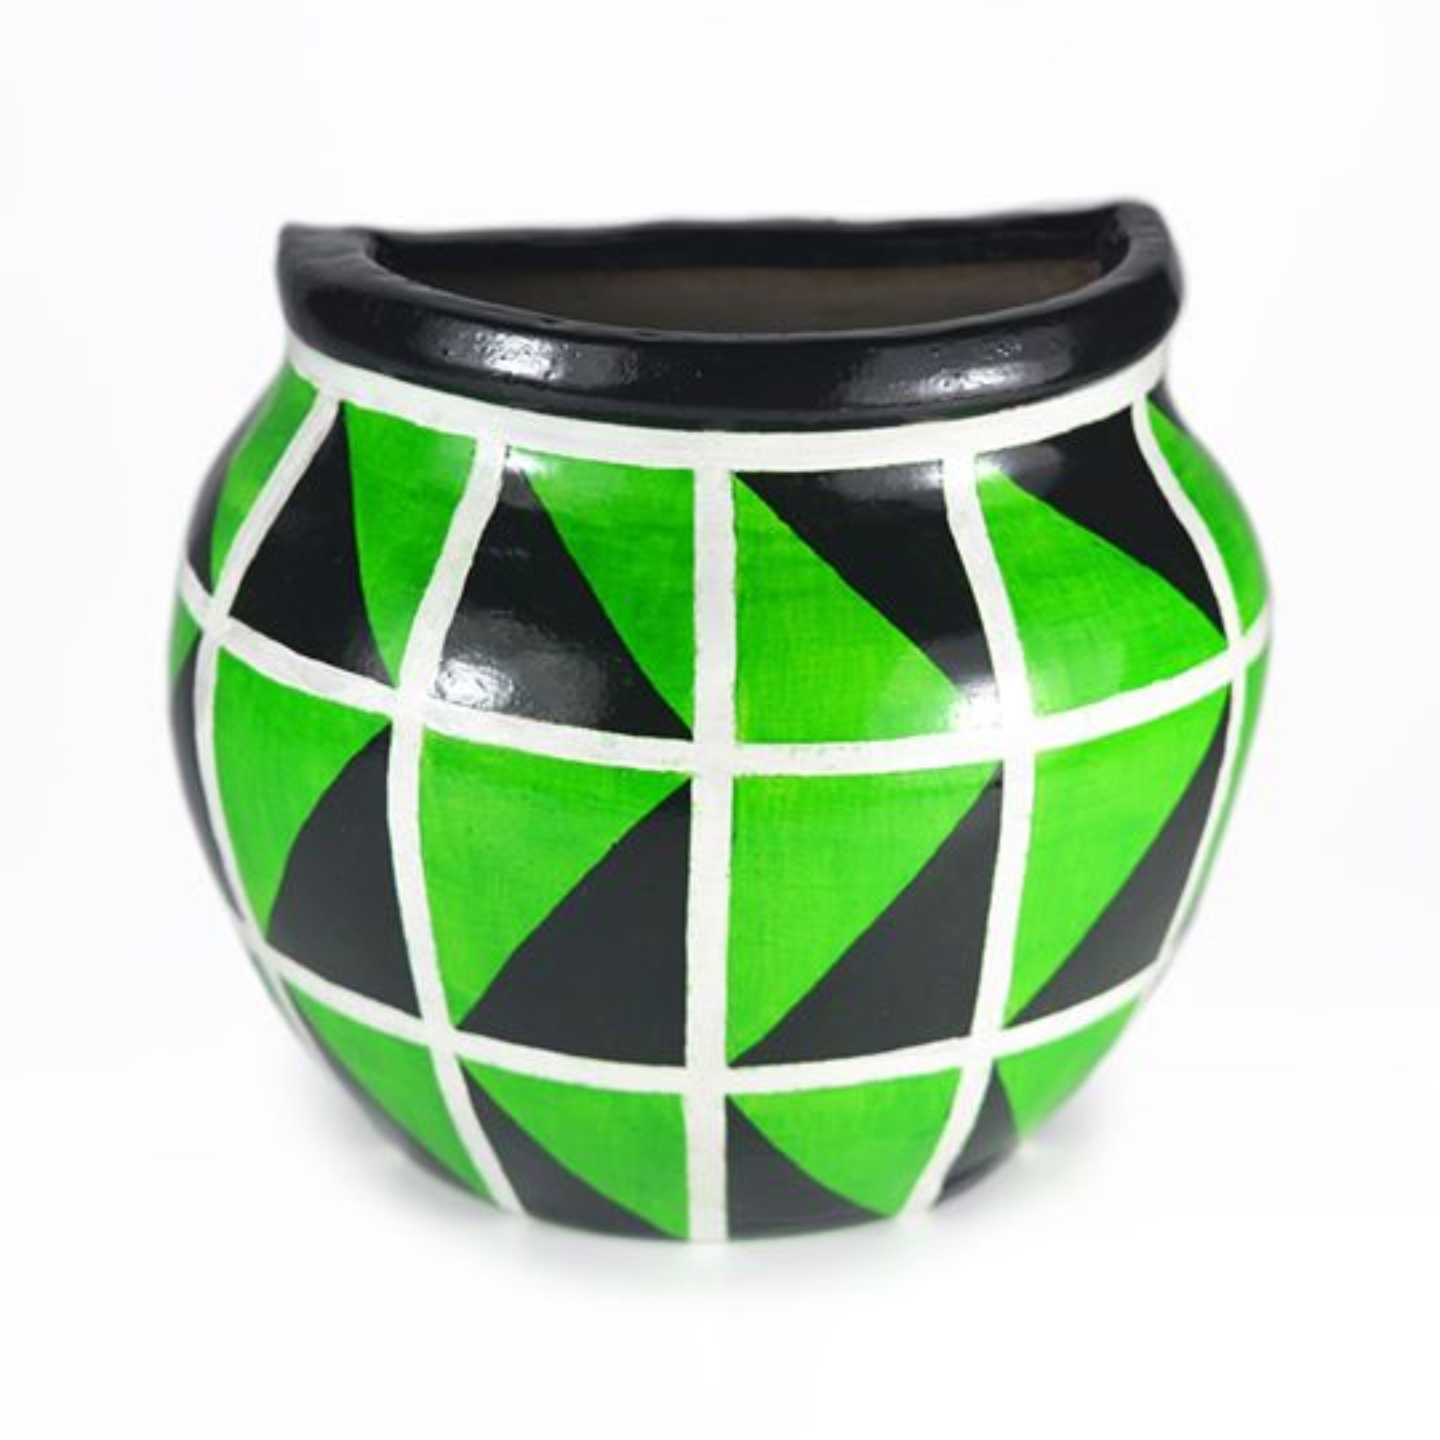 Half earthern pot with green and black coloured